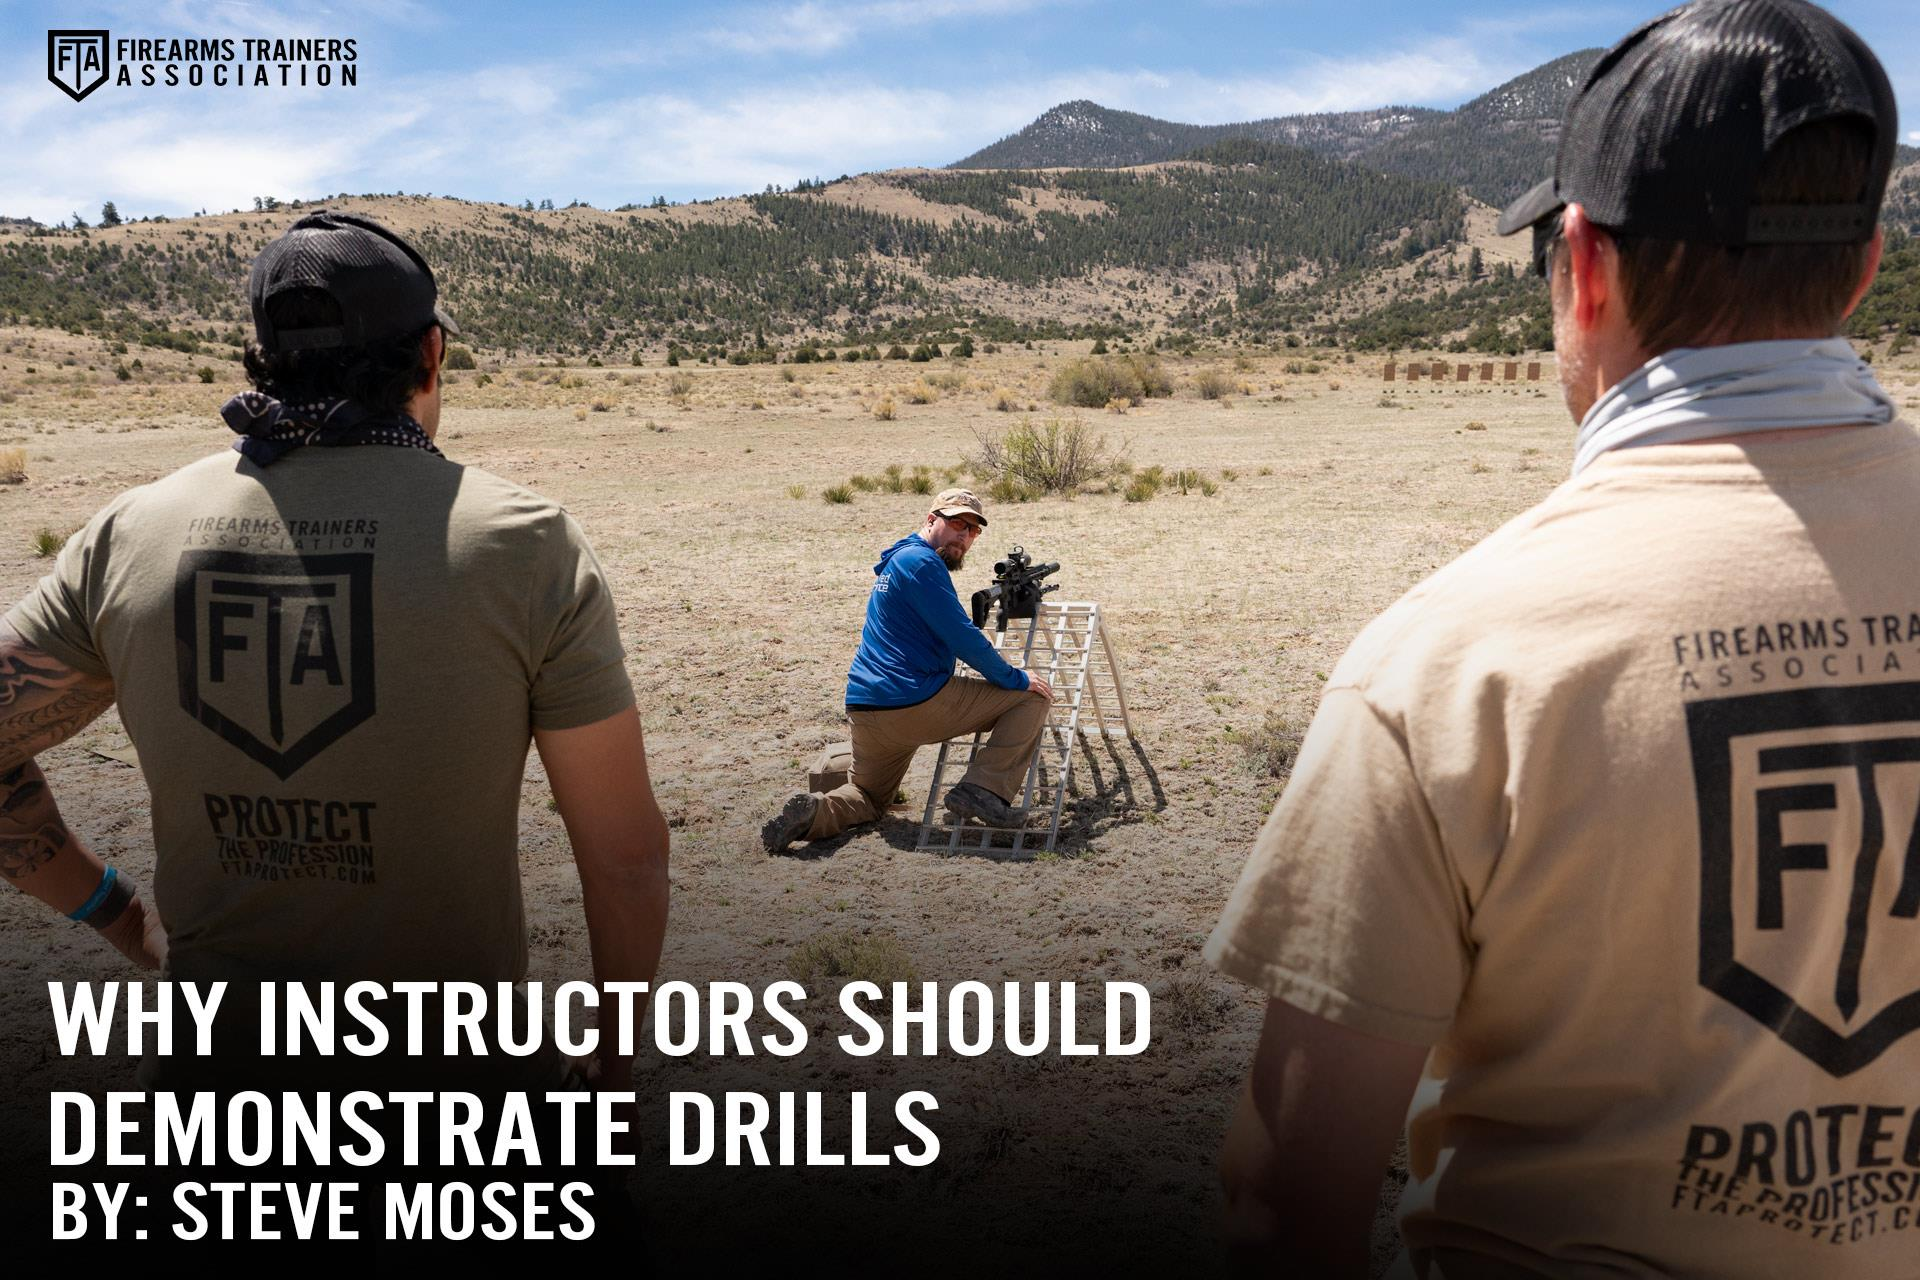 WHY INSTRUCTORS SHOULD DEMONSTRATE DRILLS